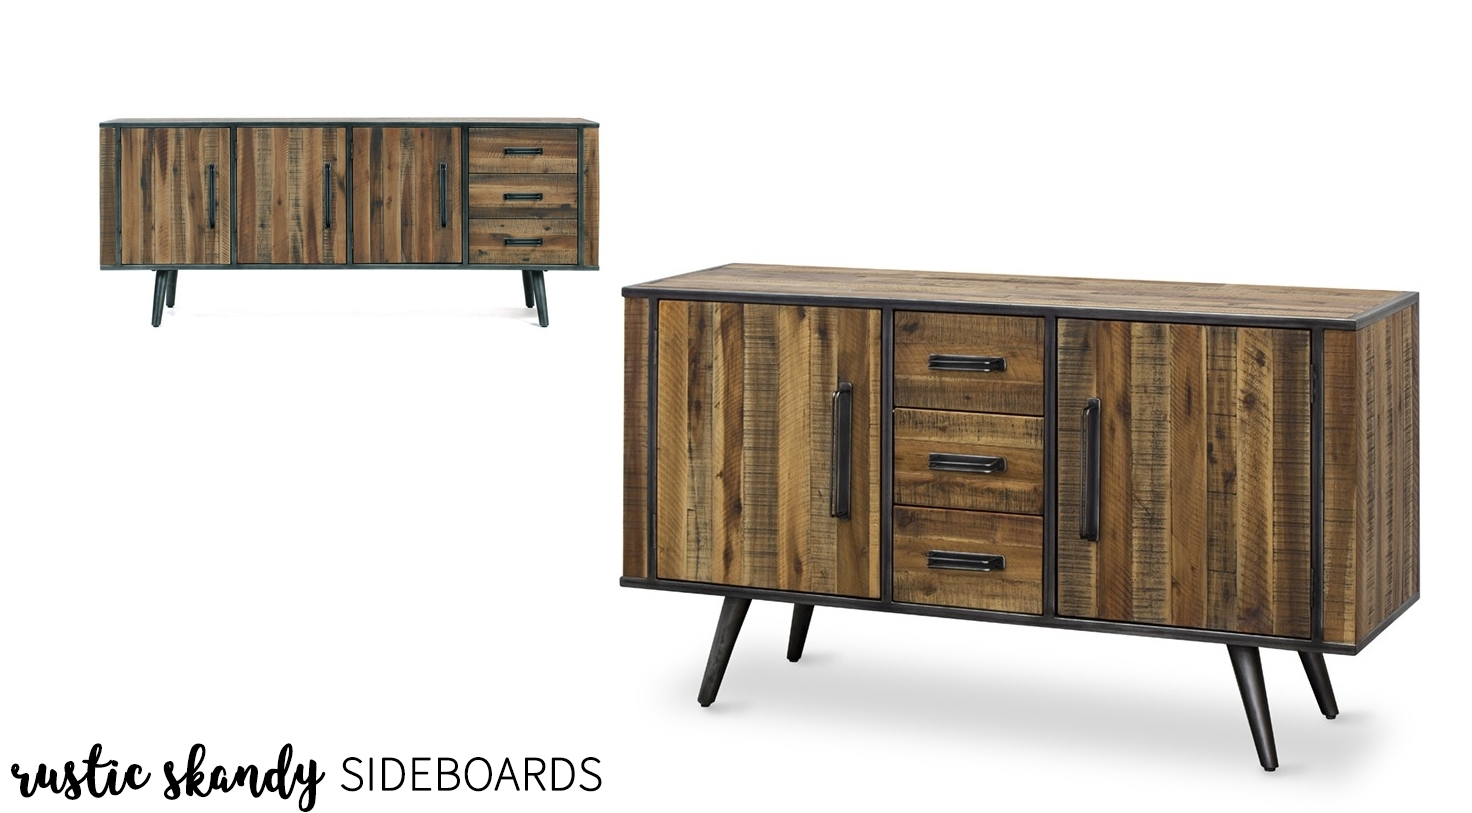 Sideboards Furnituredesign | Fbd throughout Parquet Sideboards (Image 24 of 30)